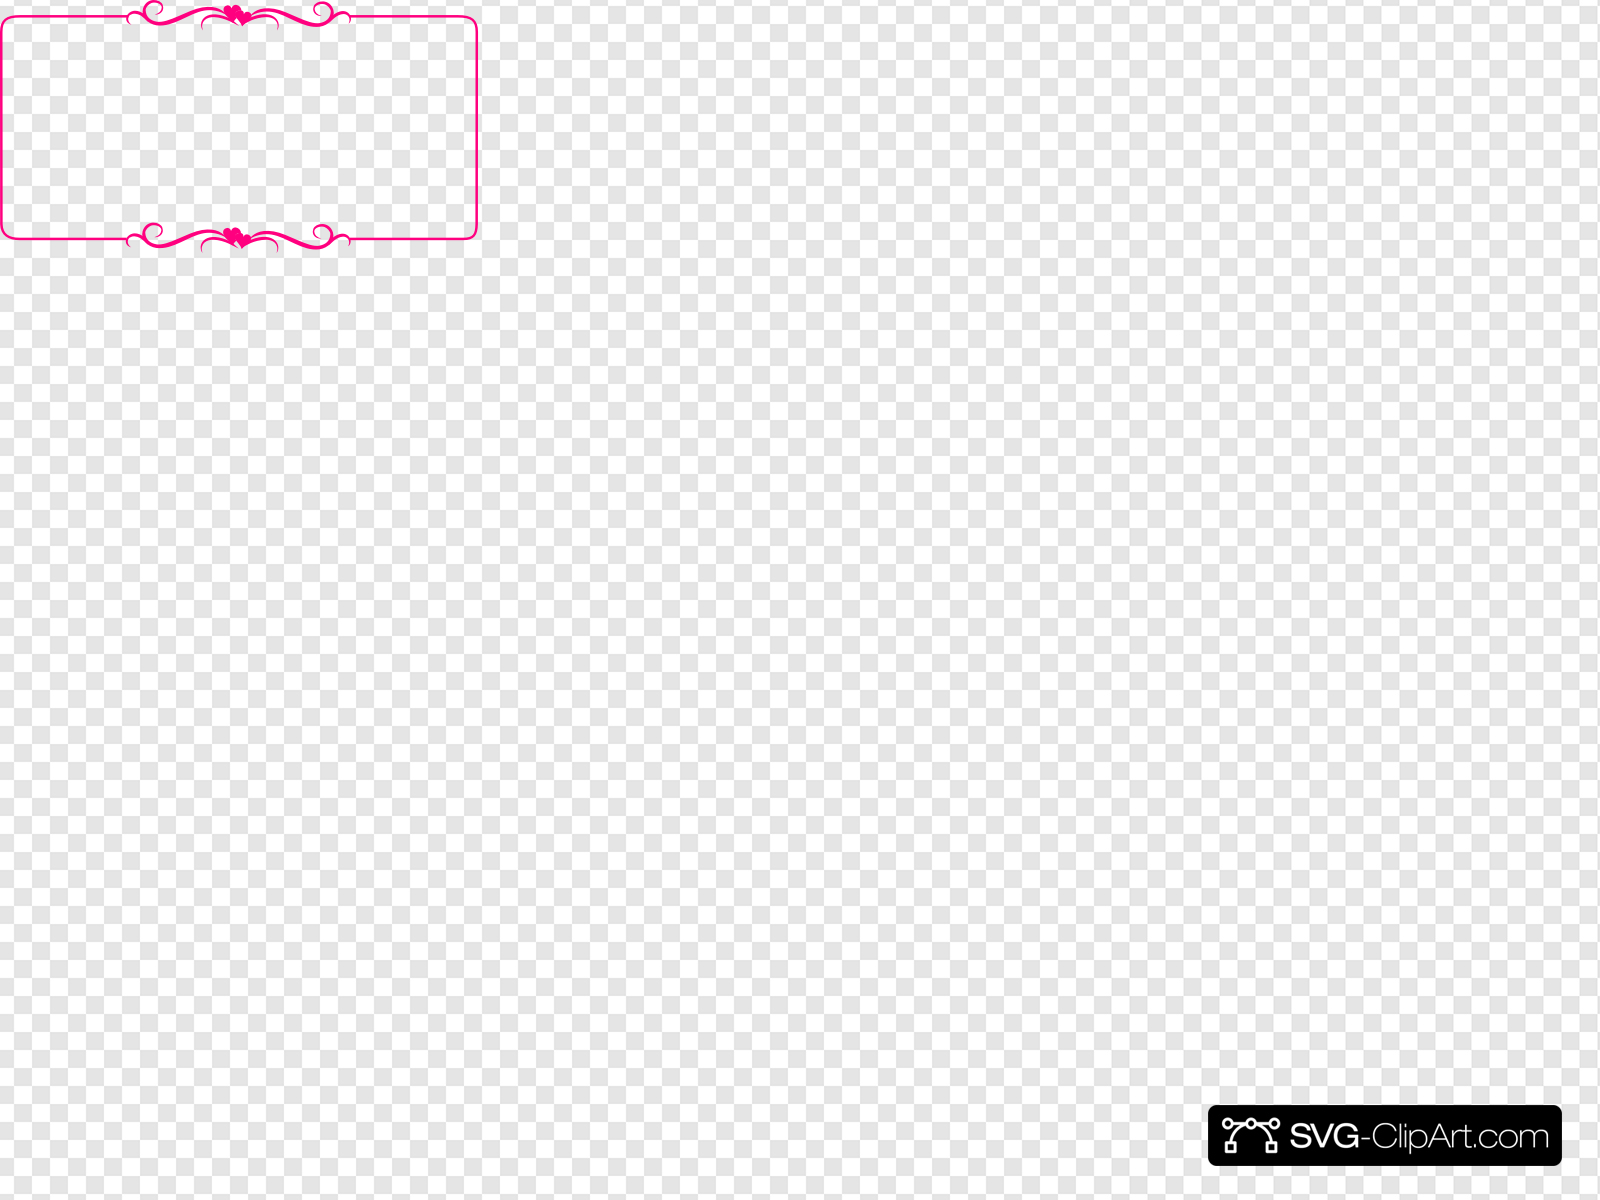 Pink Heart Border Clip art, Icon and SVG.